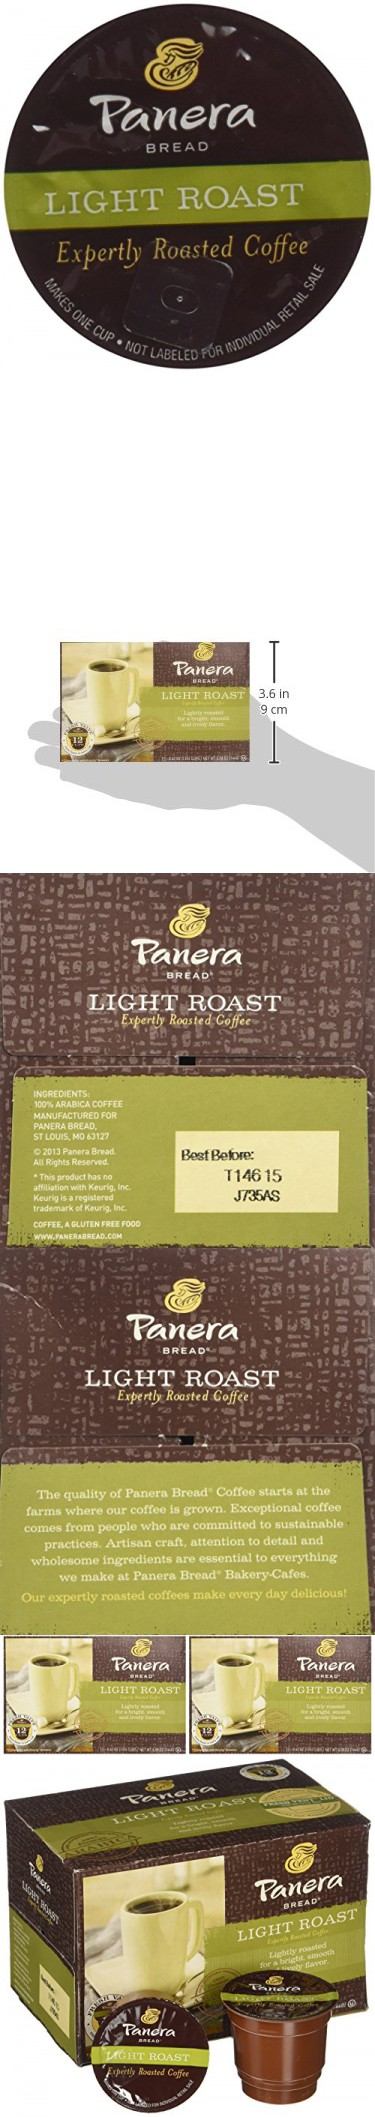 Panera Bread Coffee Box Amusing Panera Bread Kcup Single Serve Coffee 12 Count 508Oz Box Pack Inspiration